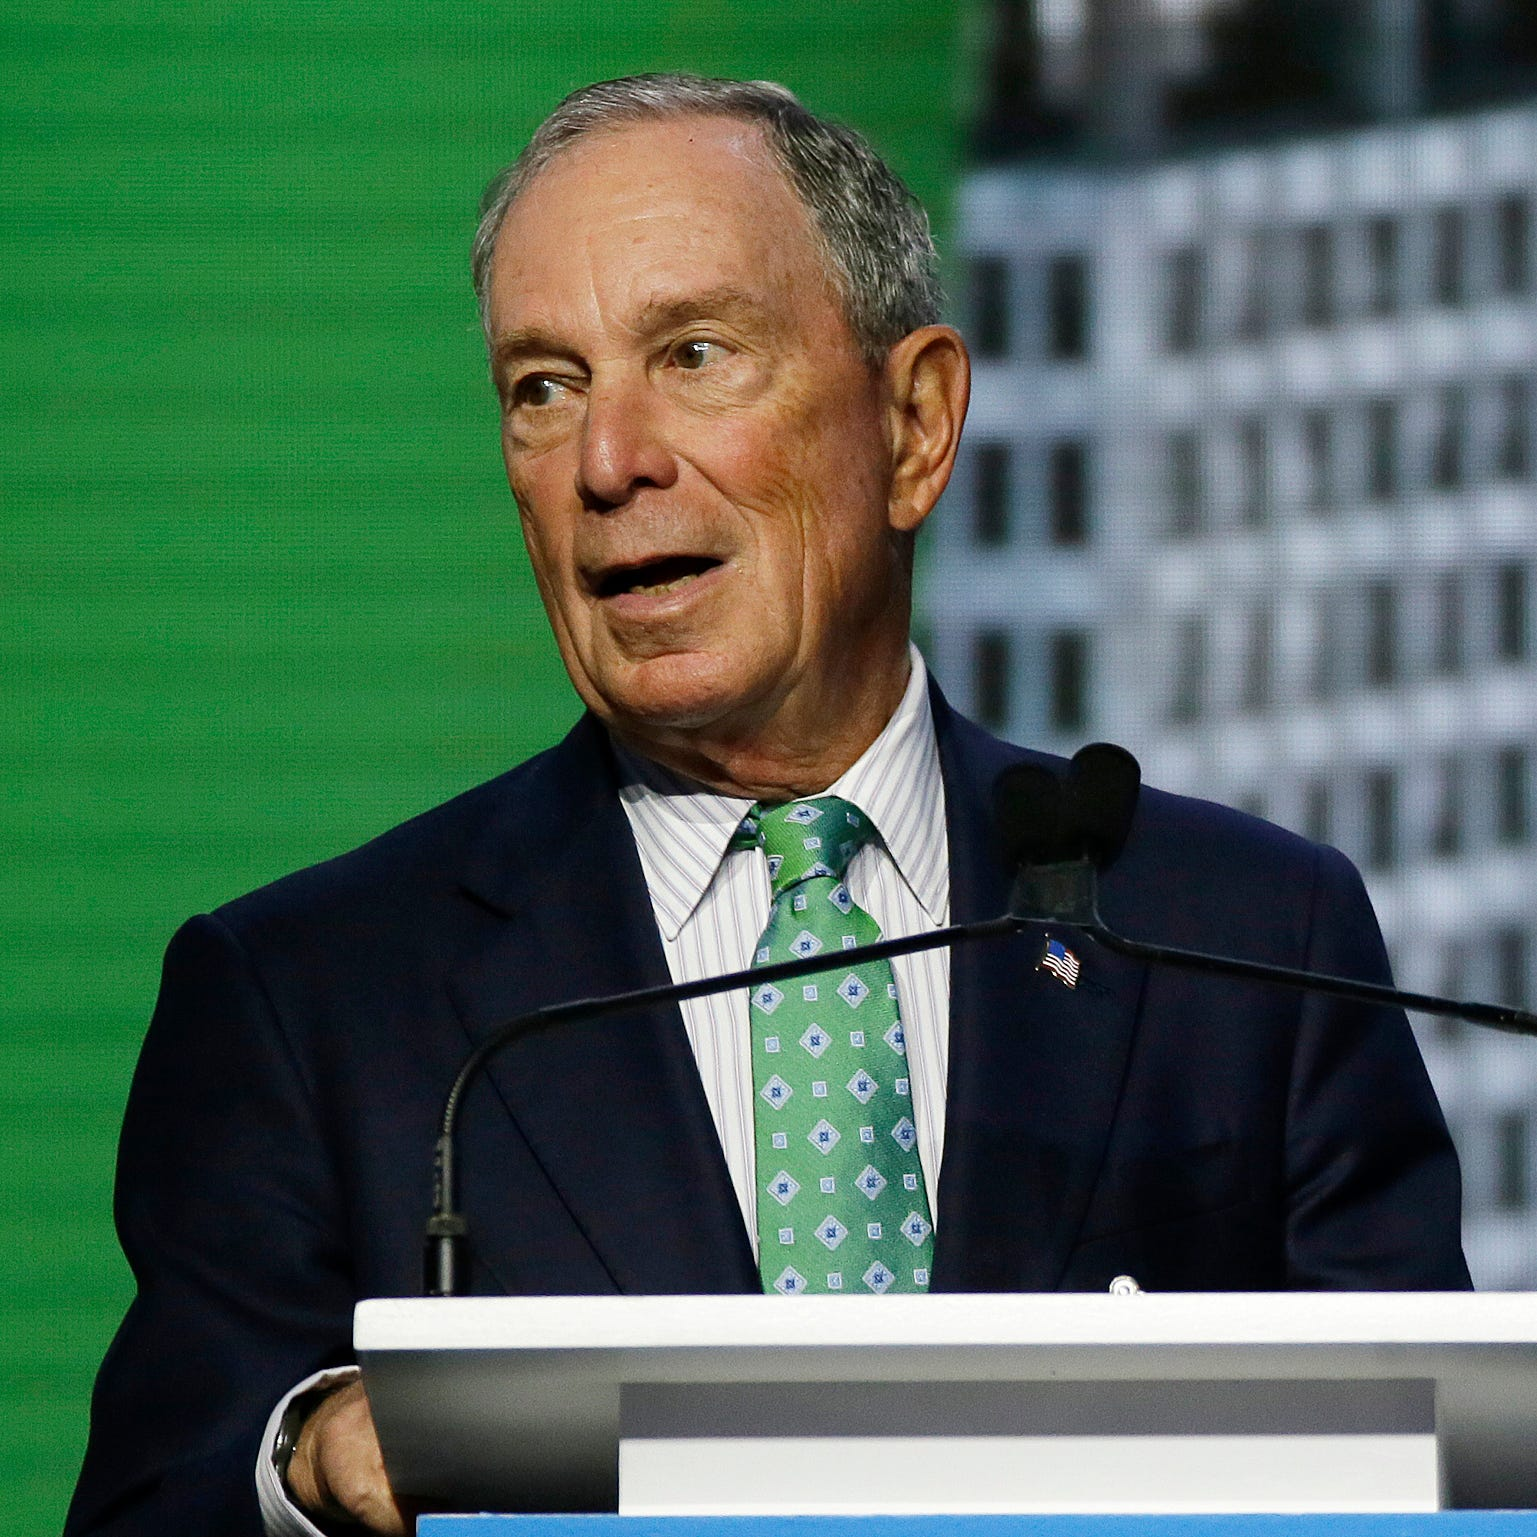 Why Michael Bloomberg donated a record $1.8B to Johns Hopkins University